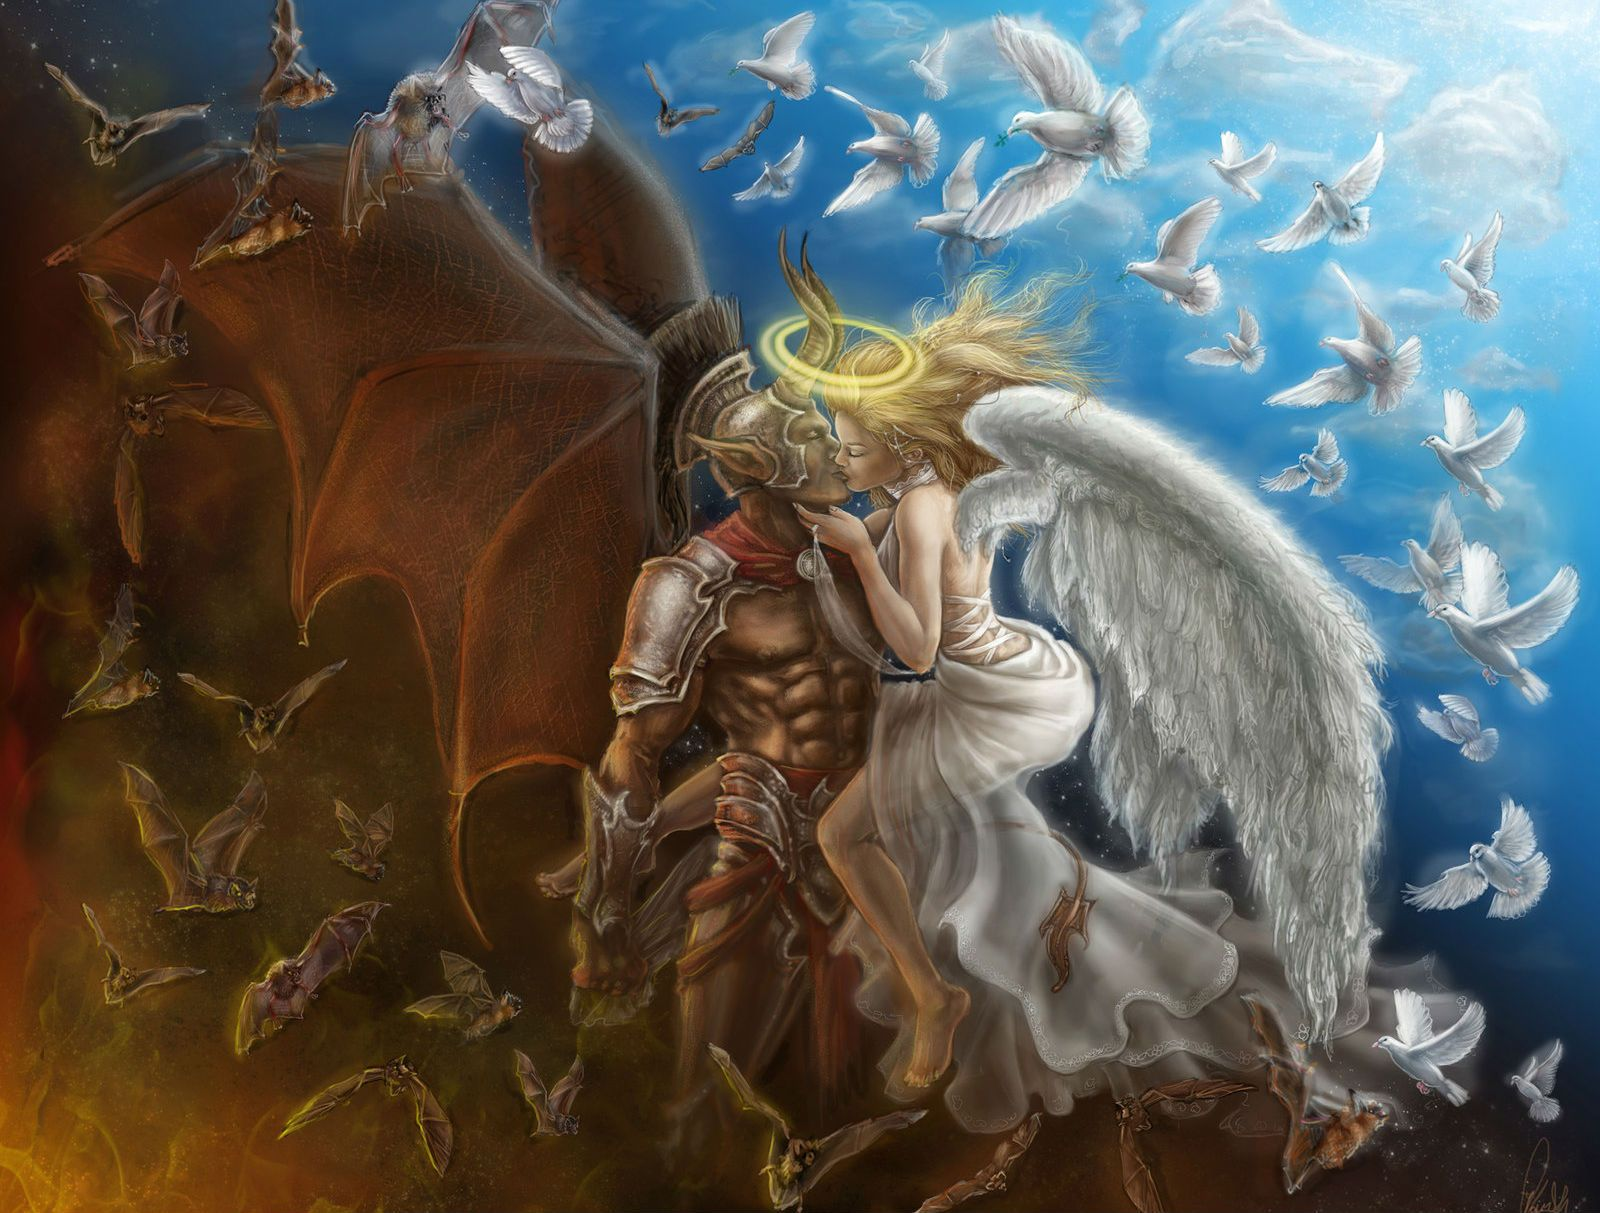 Blonde Angel and Demon Love | Alpha Coders | Wallpaper Abyss Fantasy Love 225263